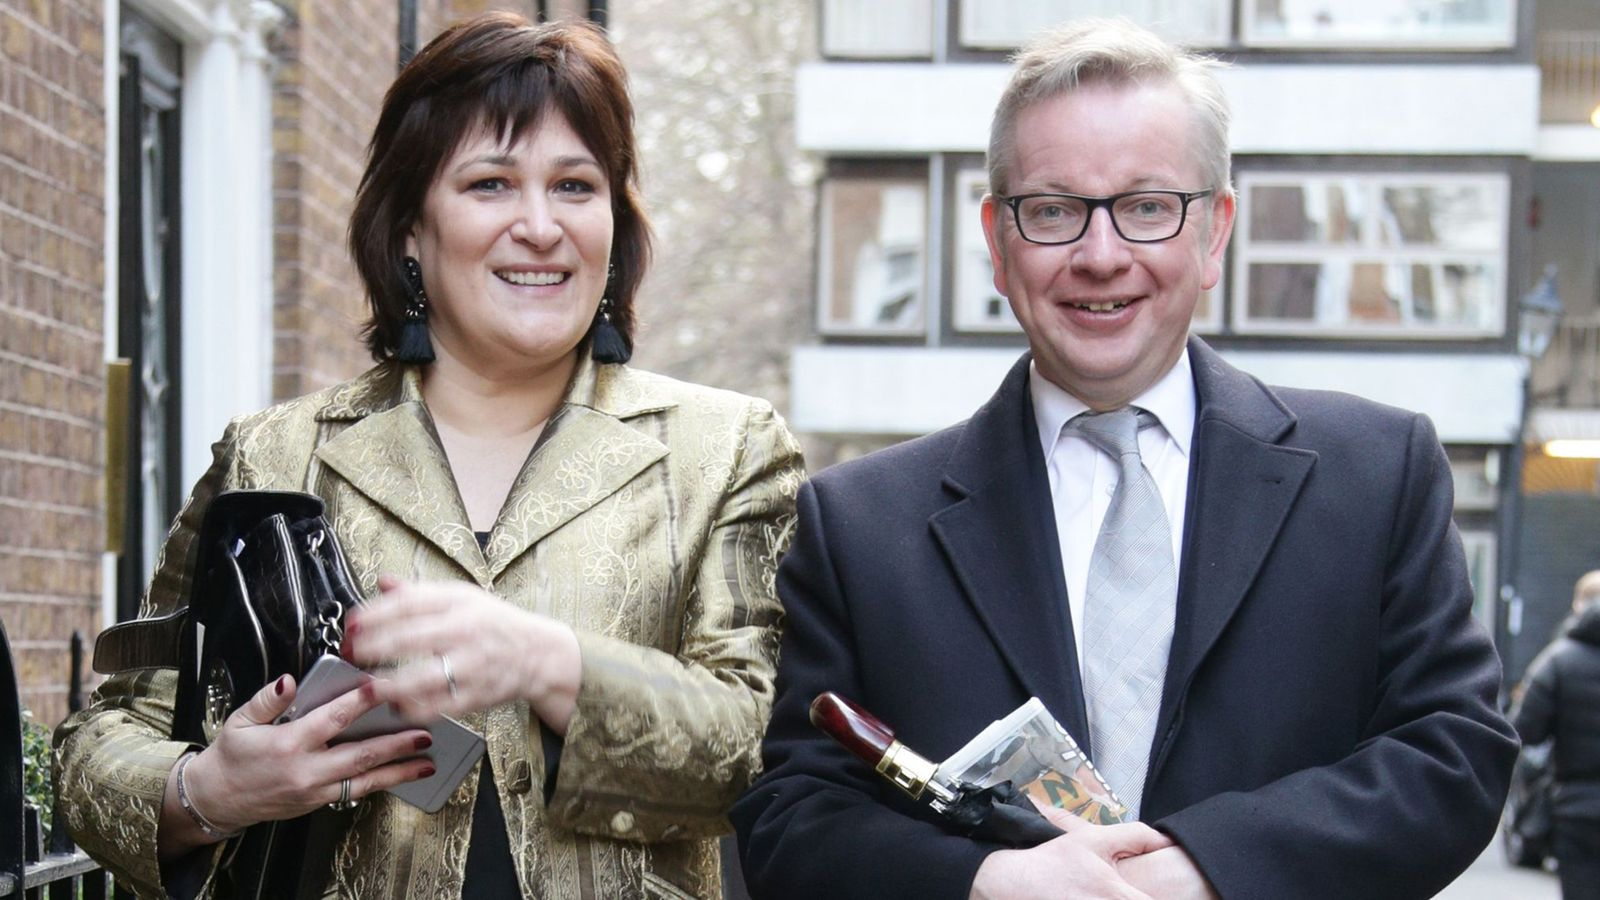 Michael Gove to divorce from journalist wife Sarah Vine after 20 years